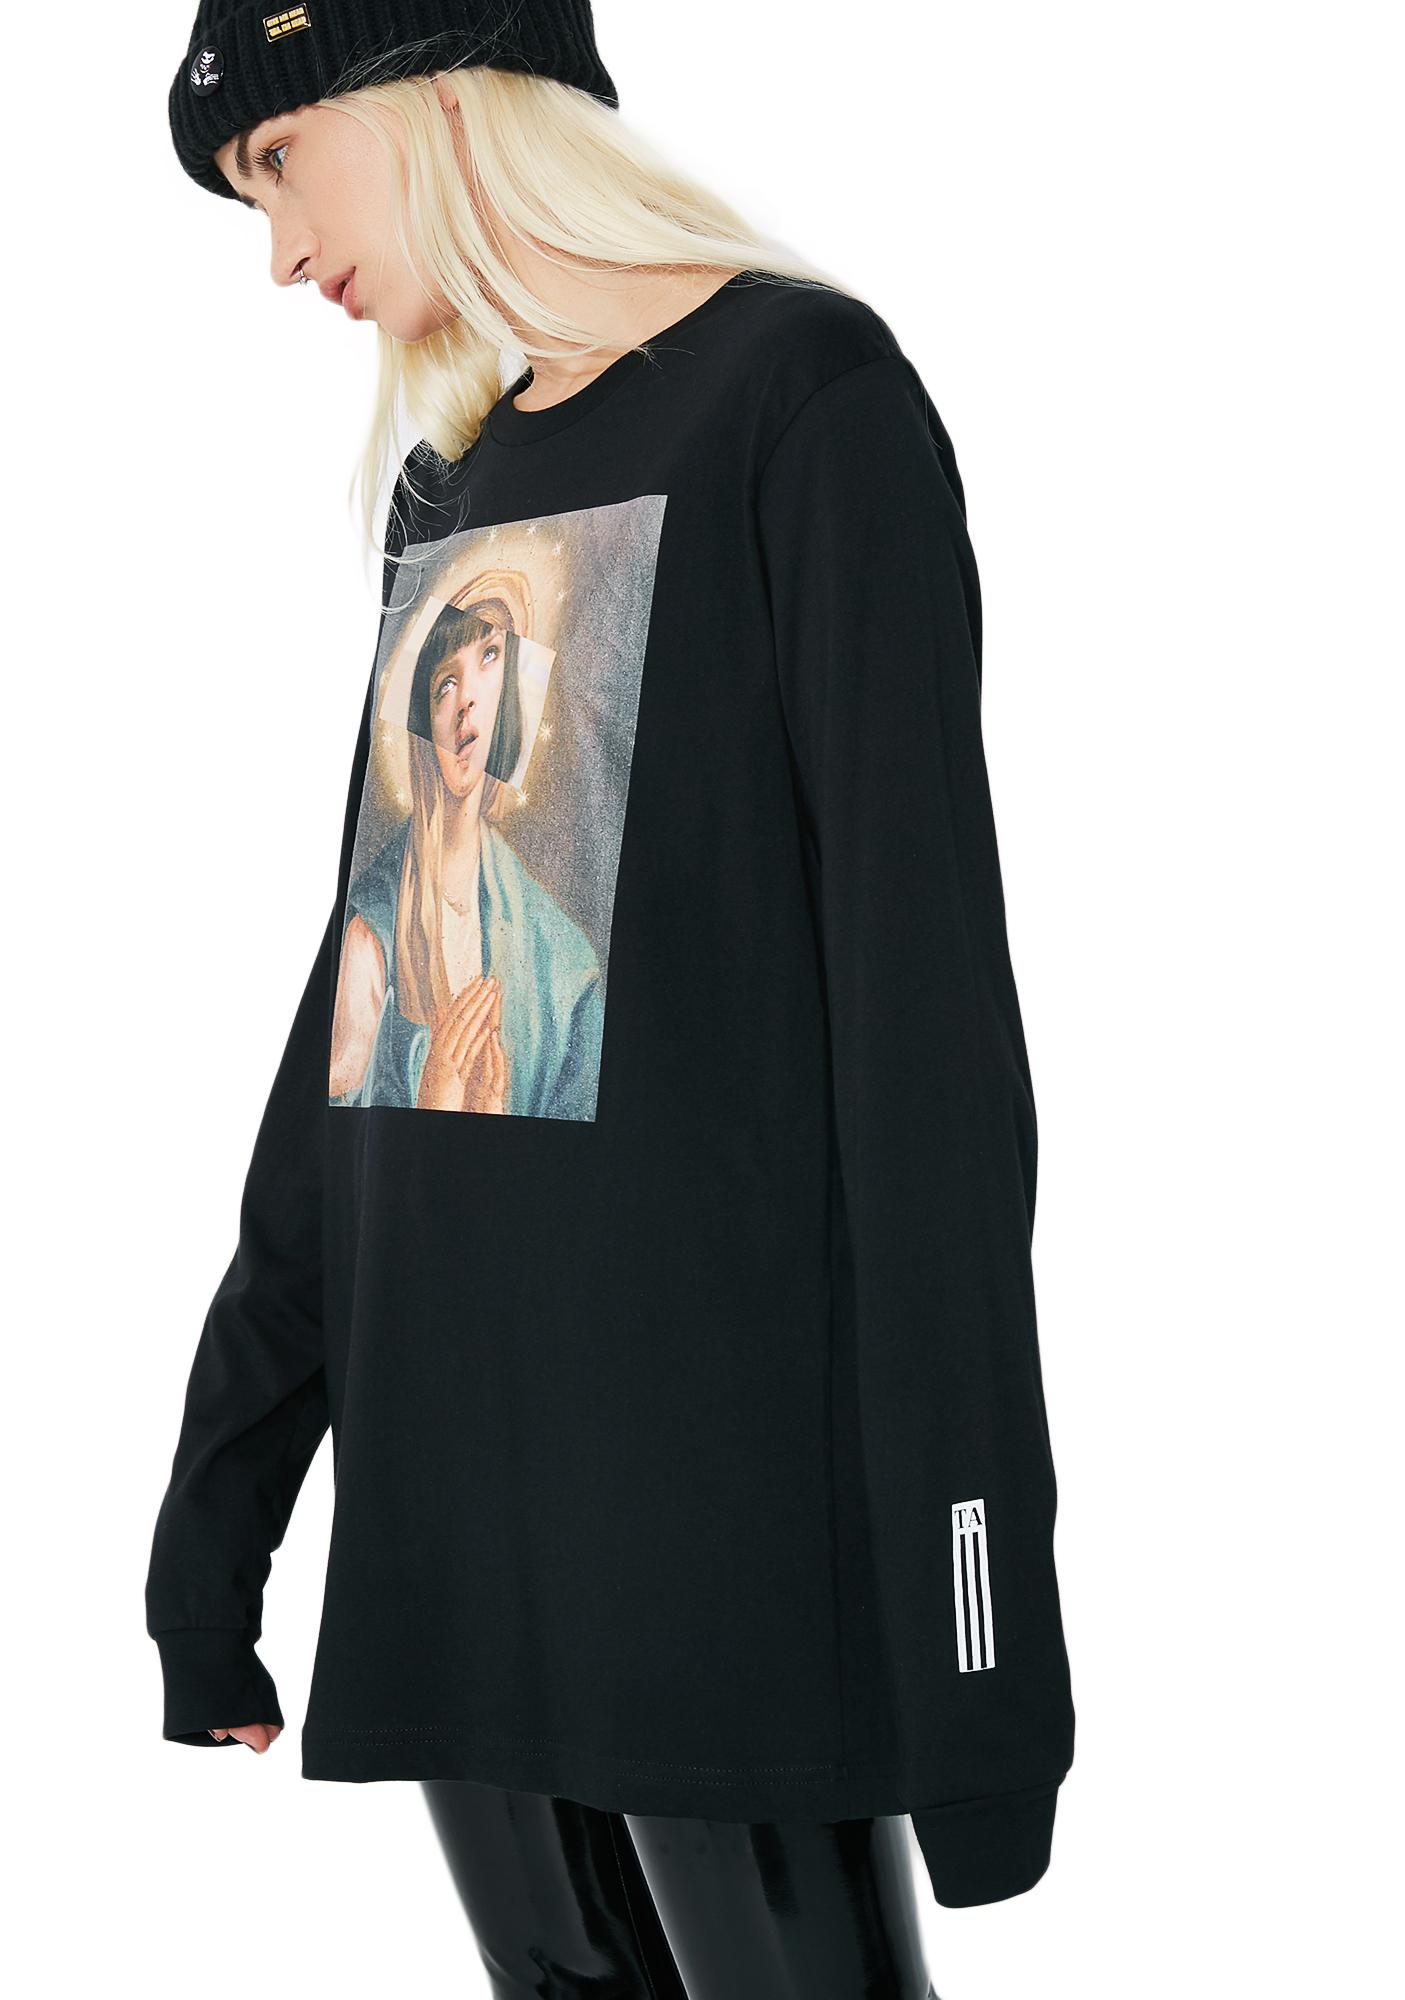 These Americans Jesus Isnt Okay Graphic Tee